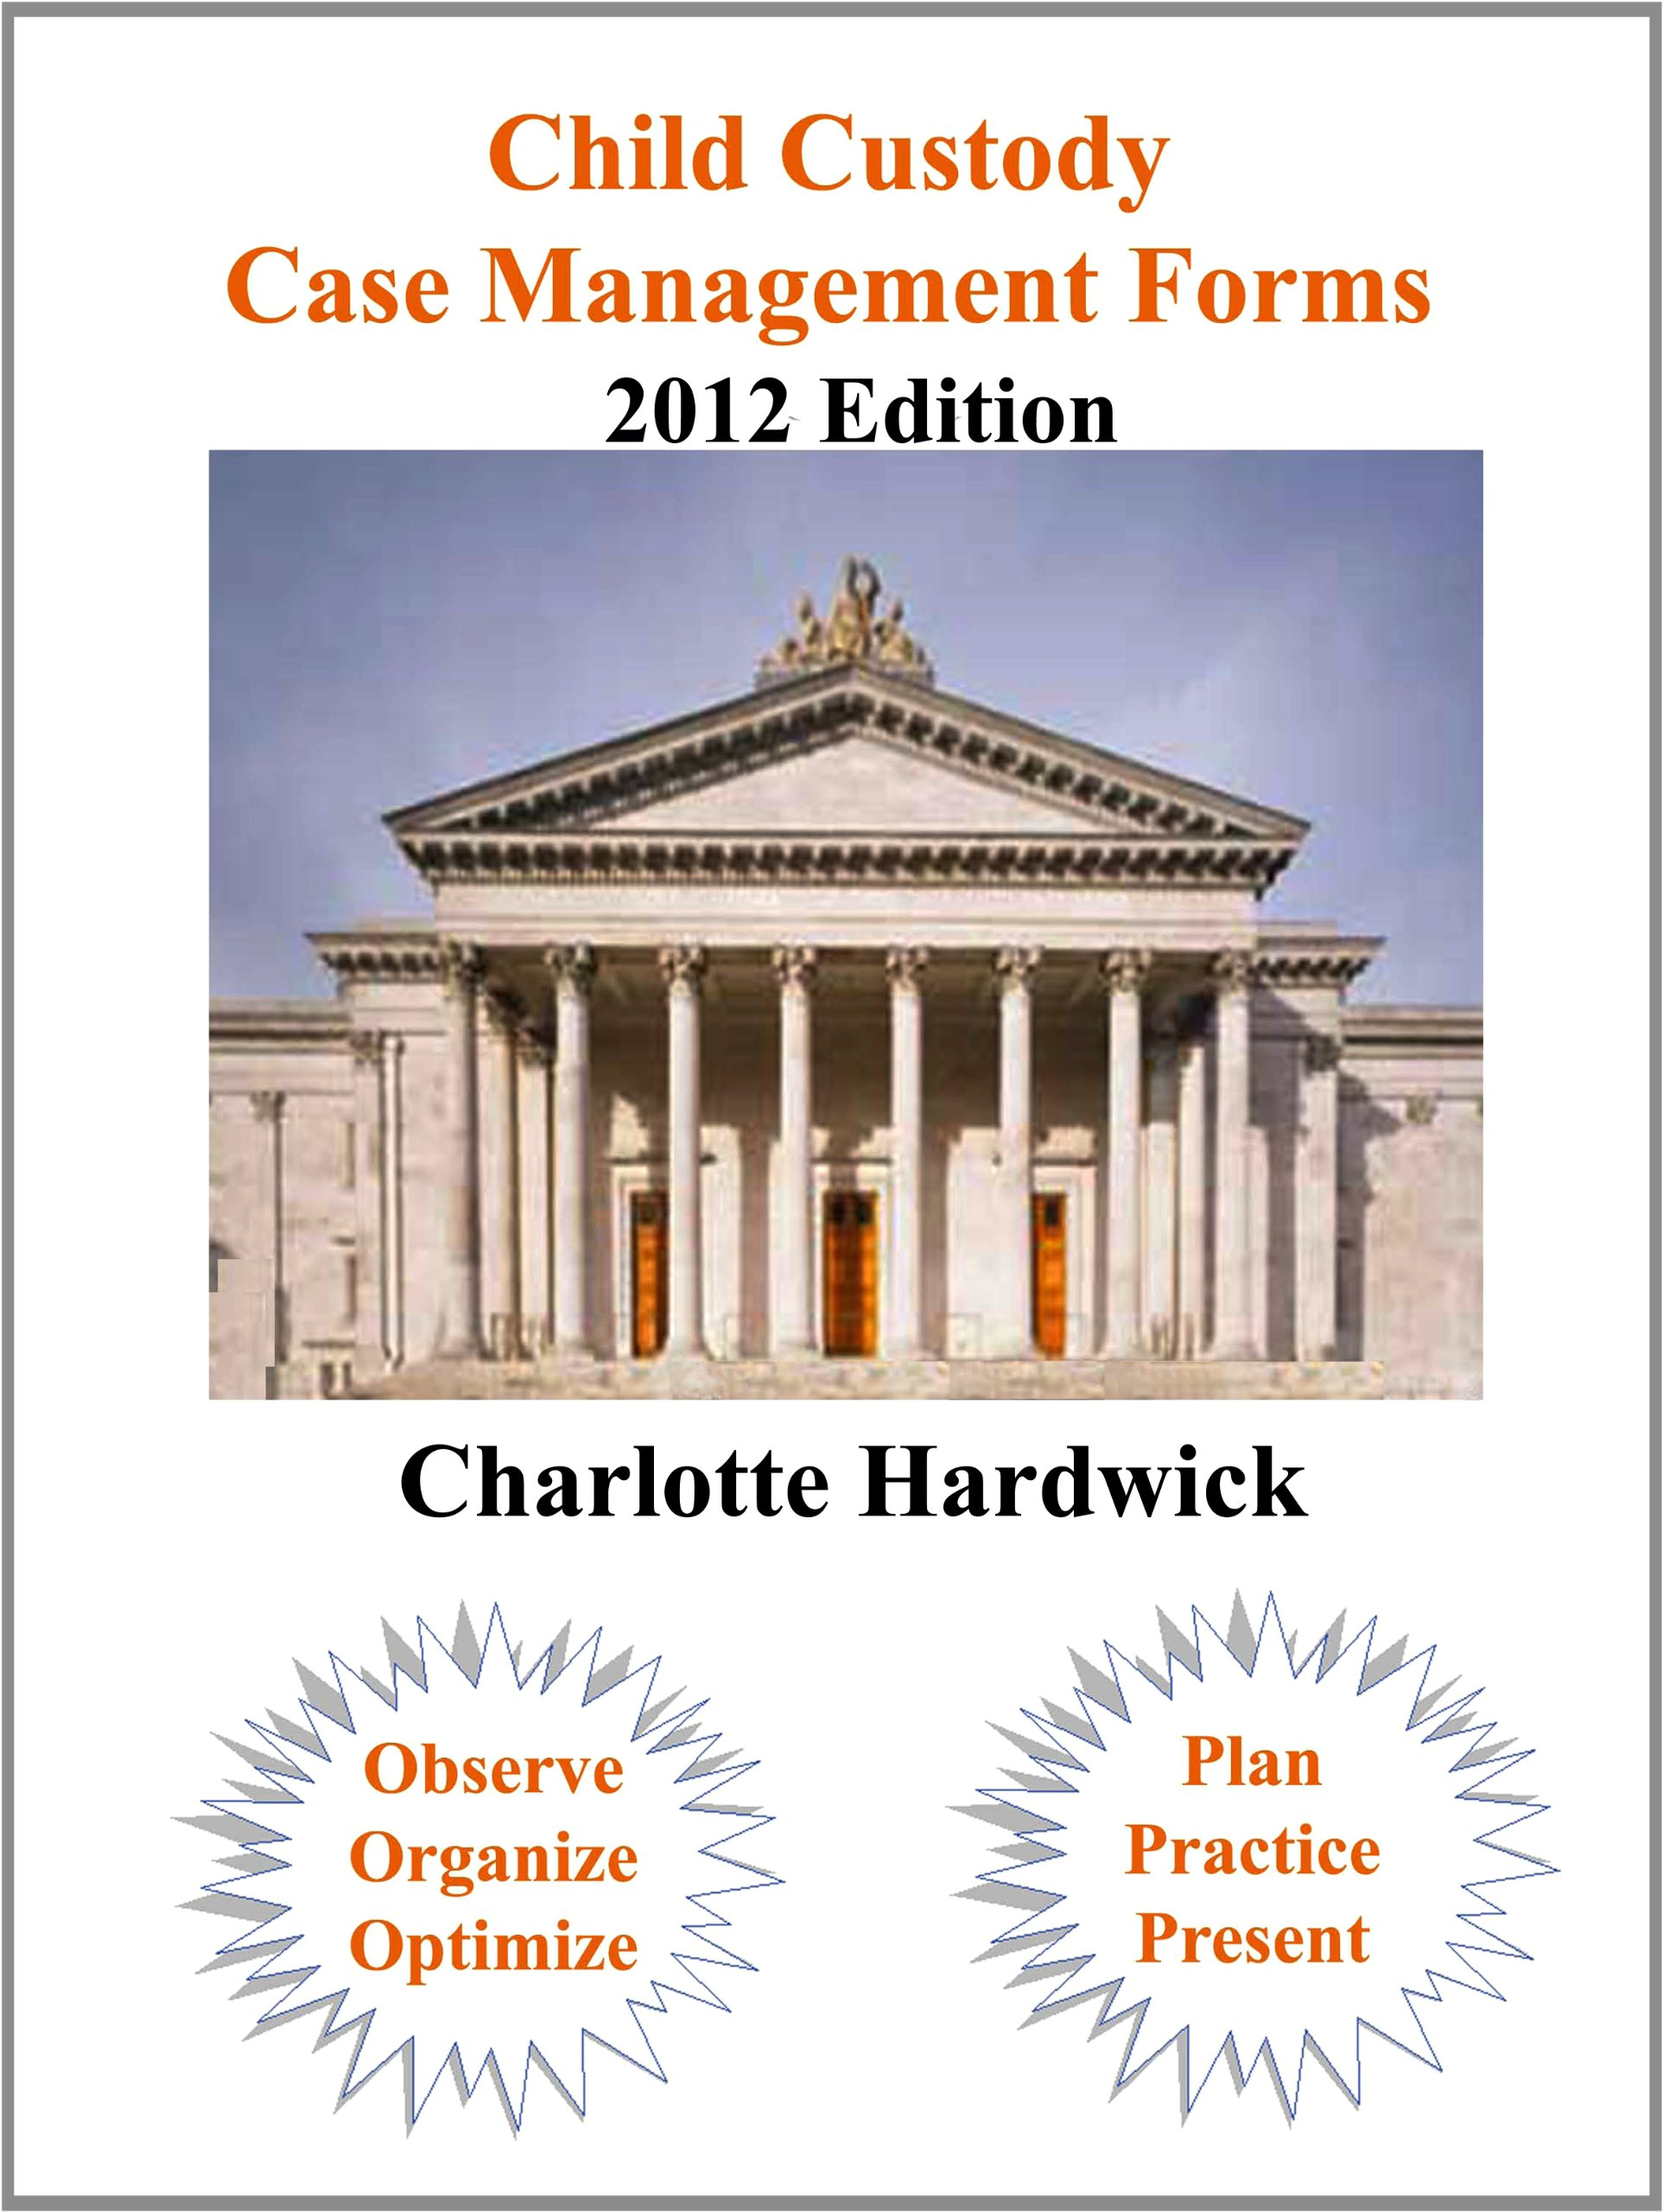 Child Custody Case Management Forms ebook